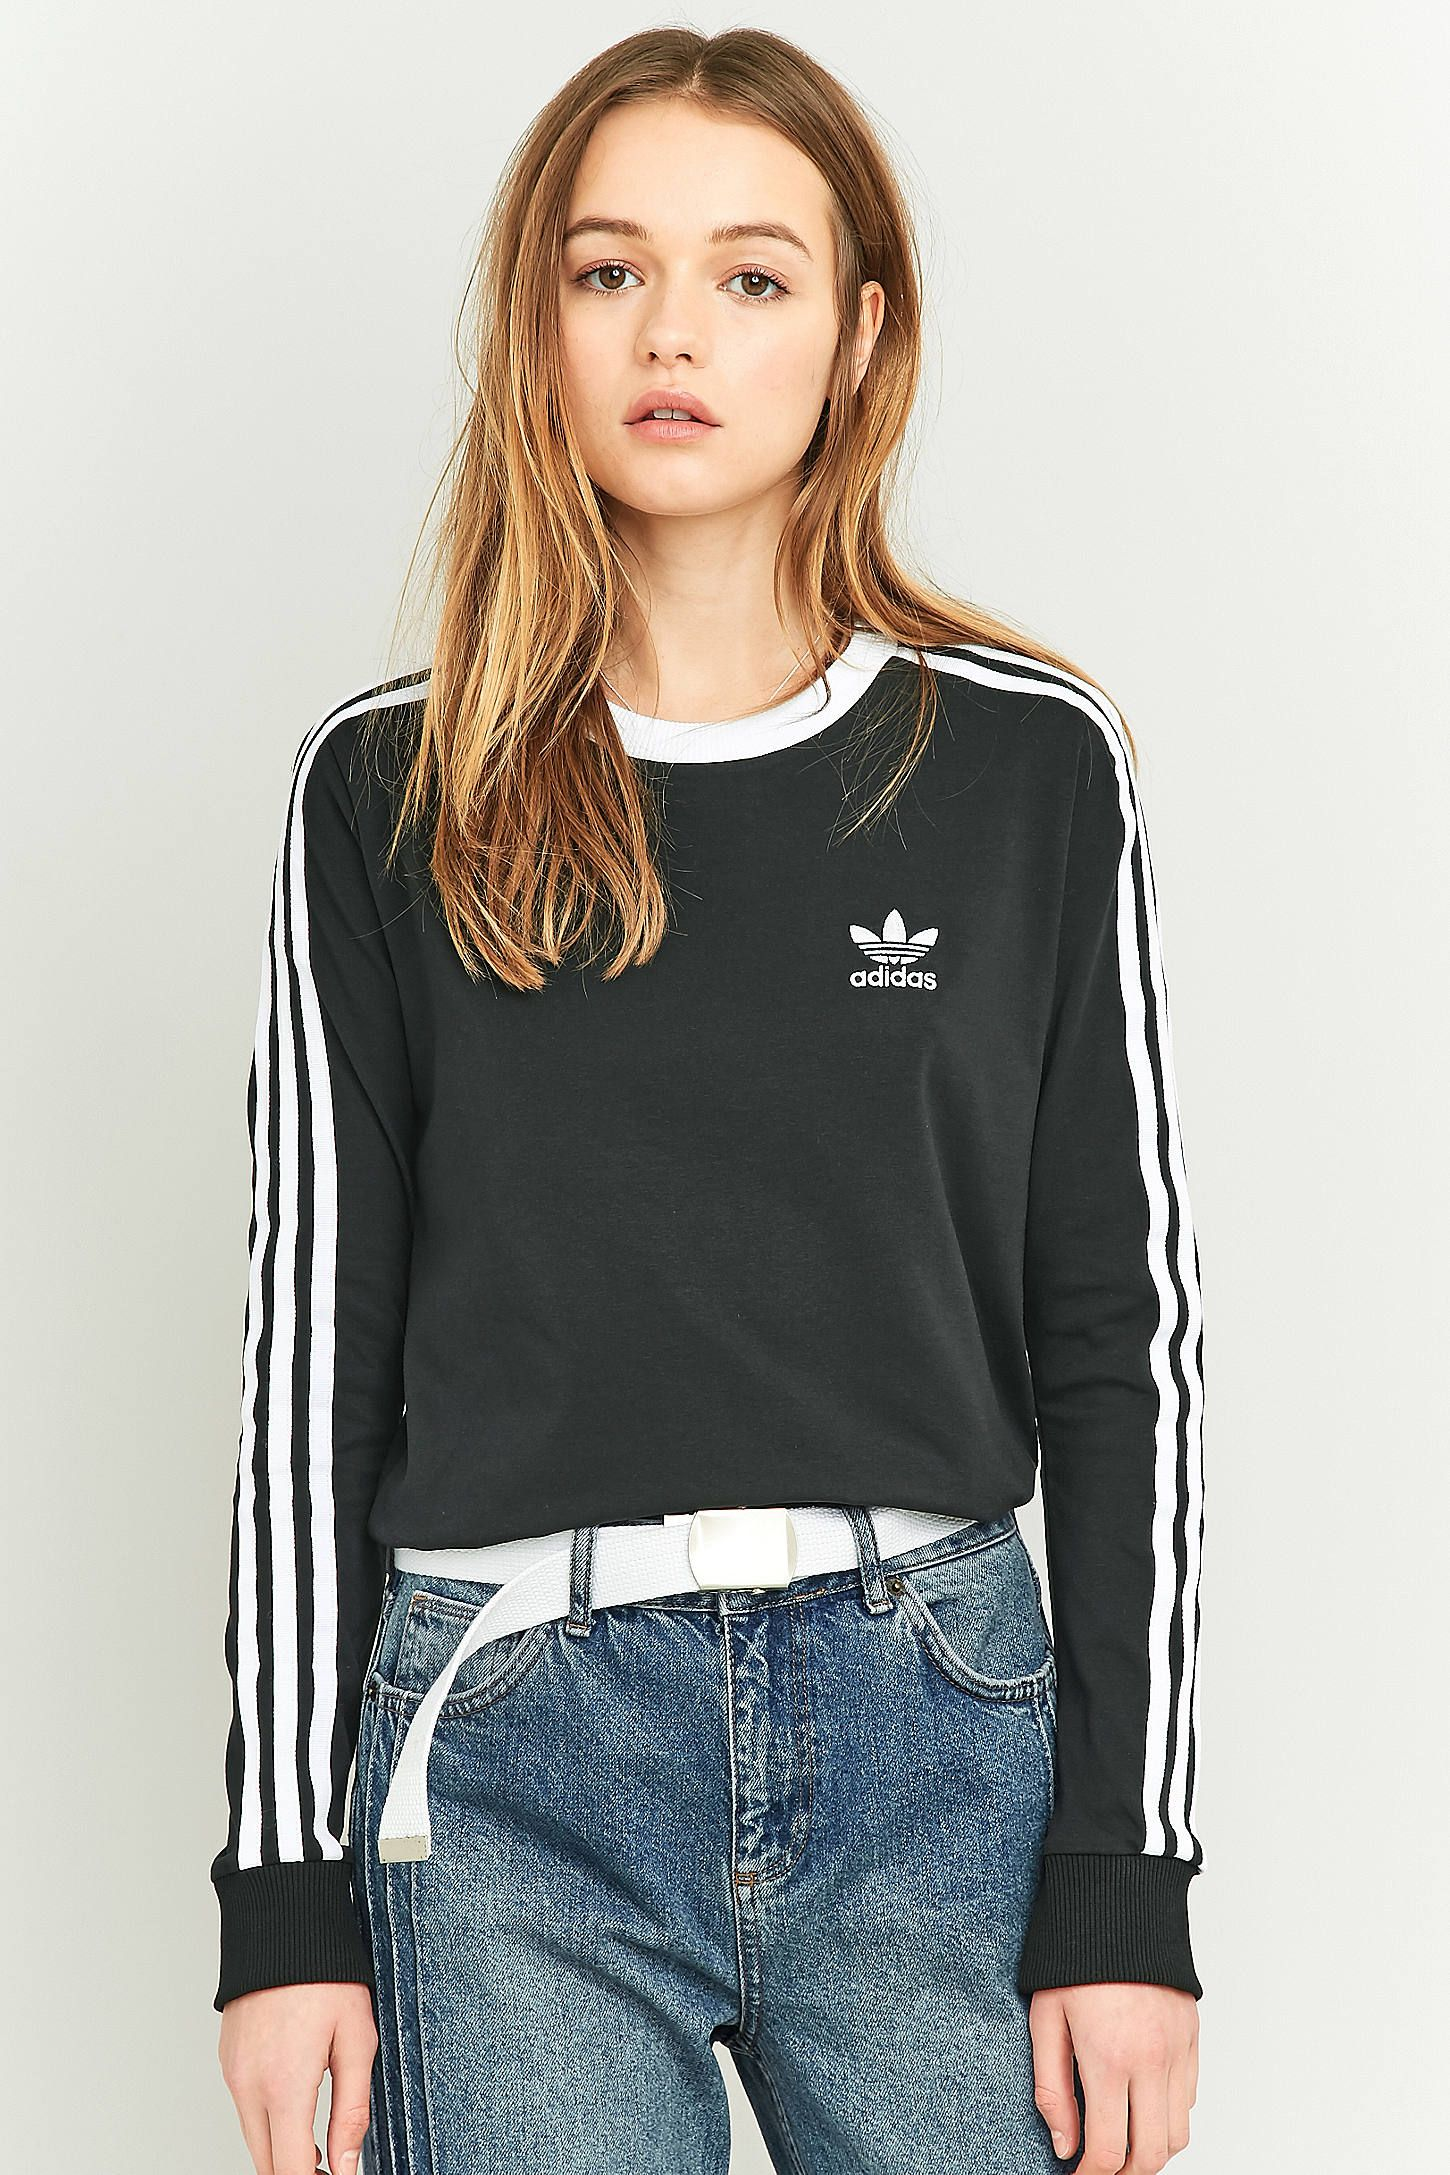 002489af2a4c0 Pinterest Fashion, Urban Outfitters, Adidas Originals, Longsleeve, Adidas  Jacket, Shirts For